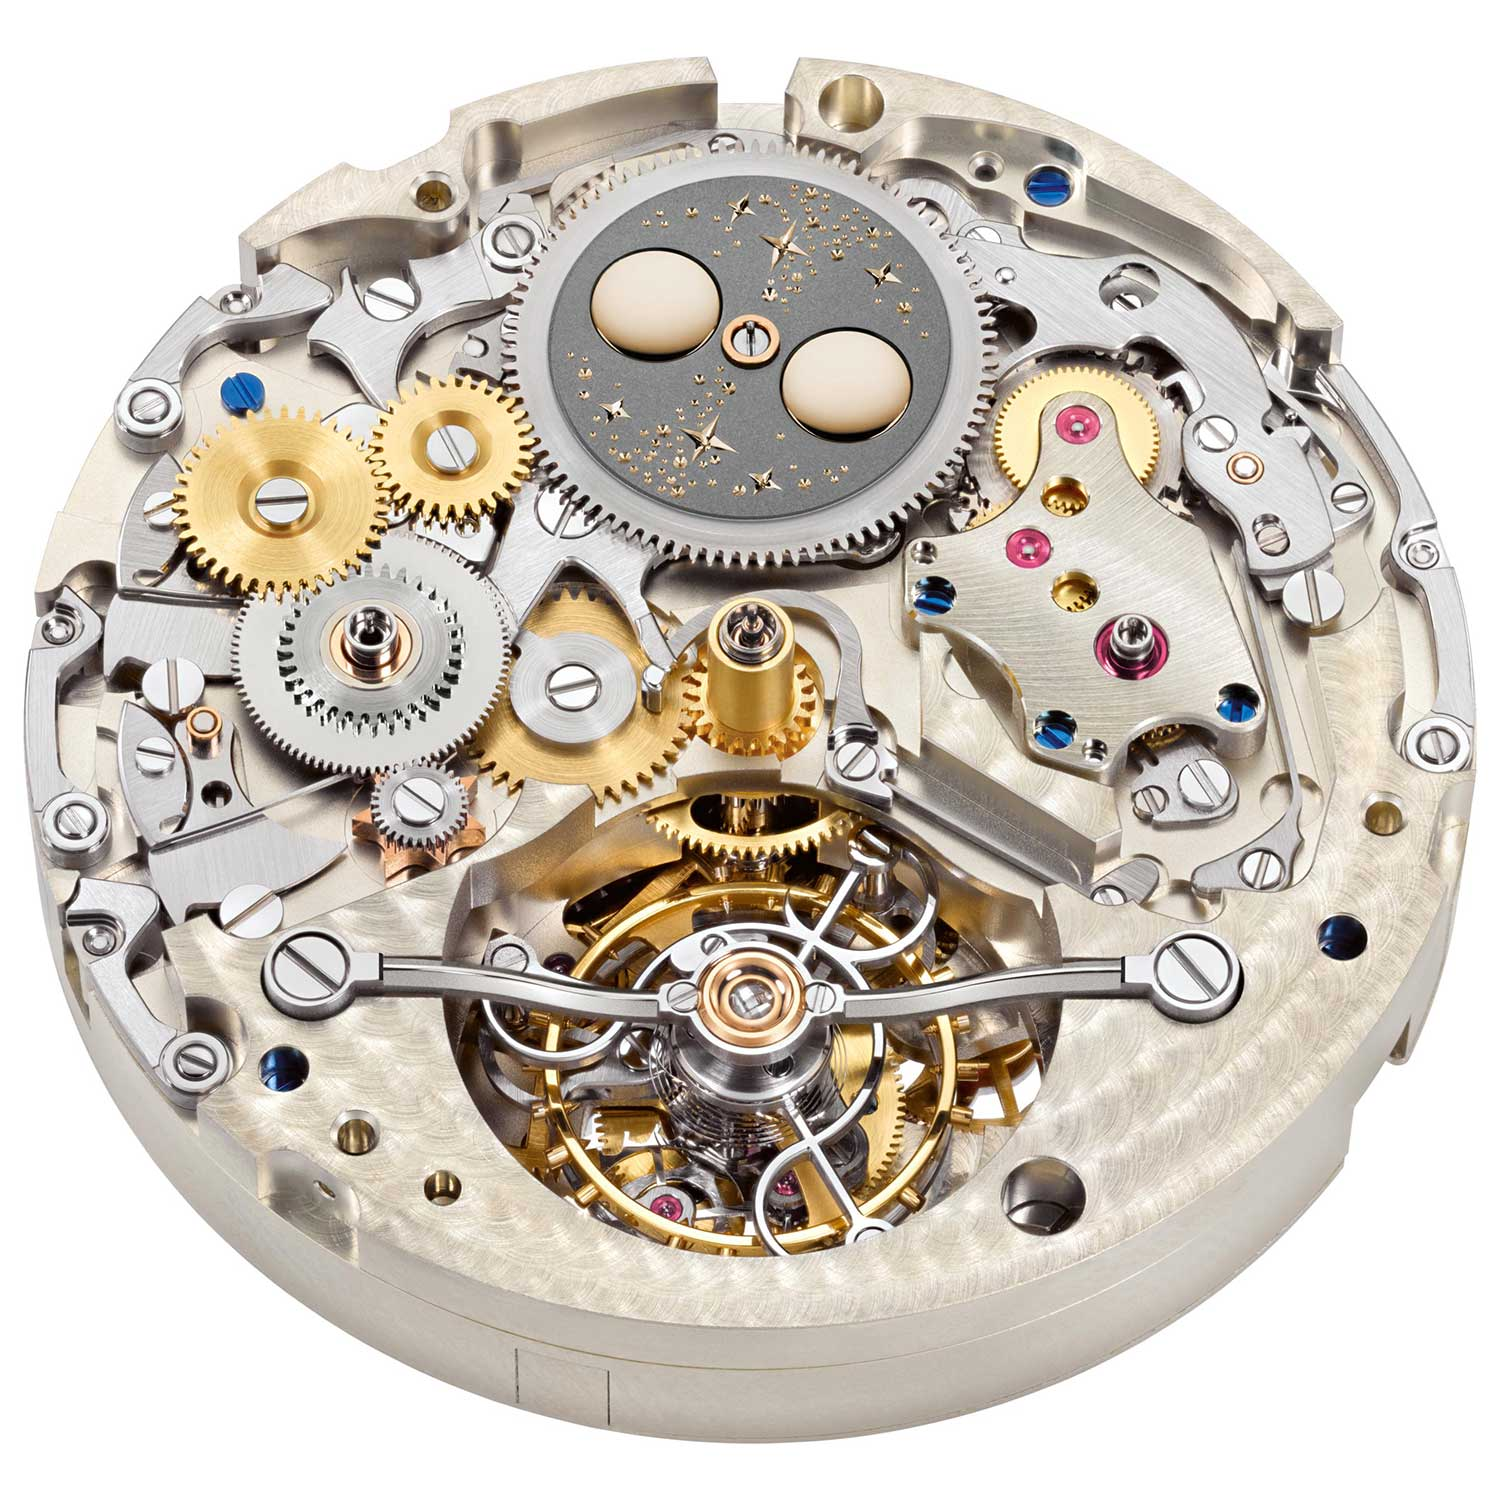 """The Lange manufacture calibre L133.1 as it would be viewed once the dial is removed from the Tourbograph Perpetual Honeygold """"Homage to F. A. Lange"""""""